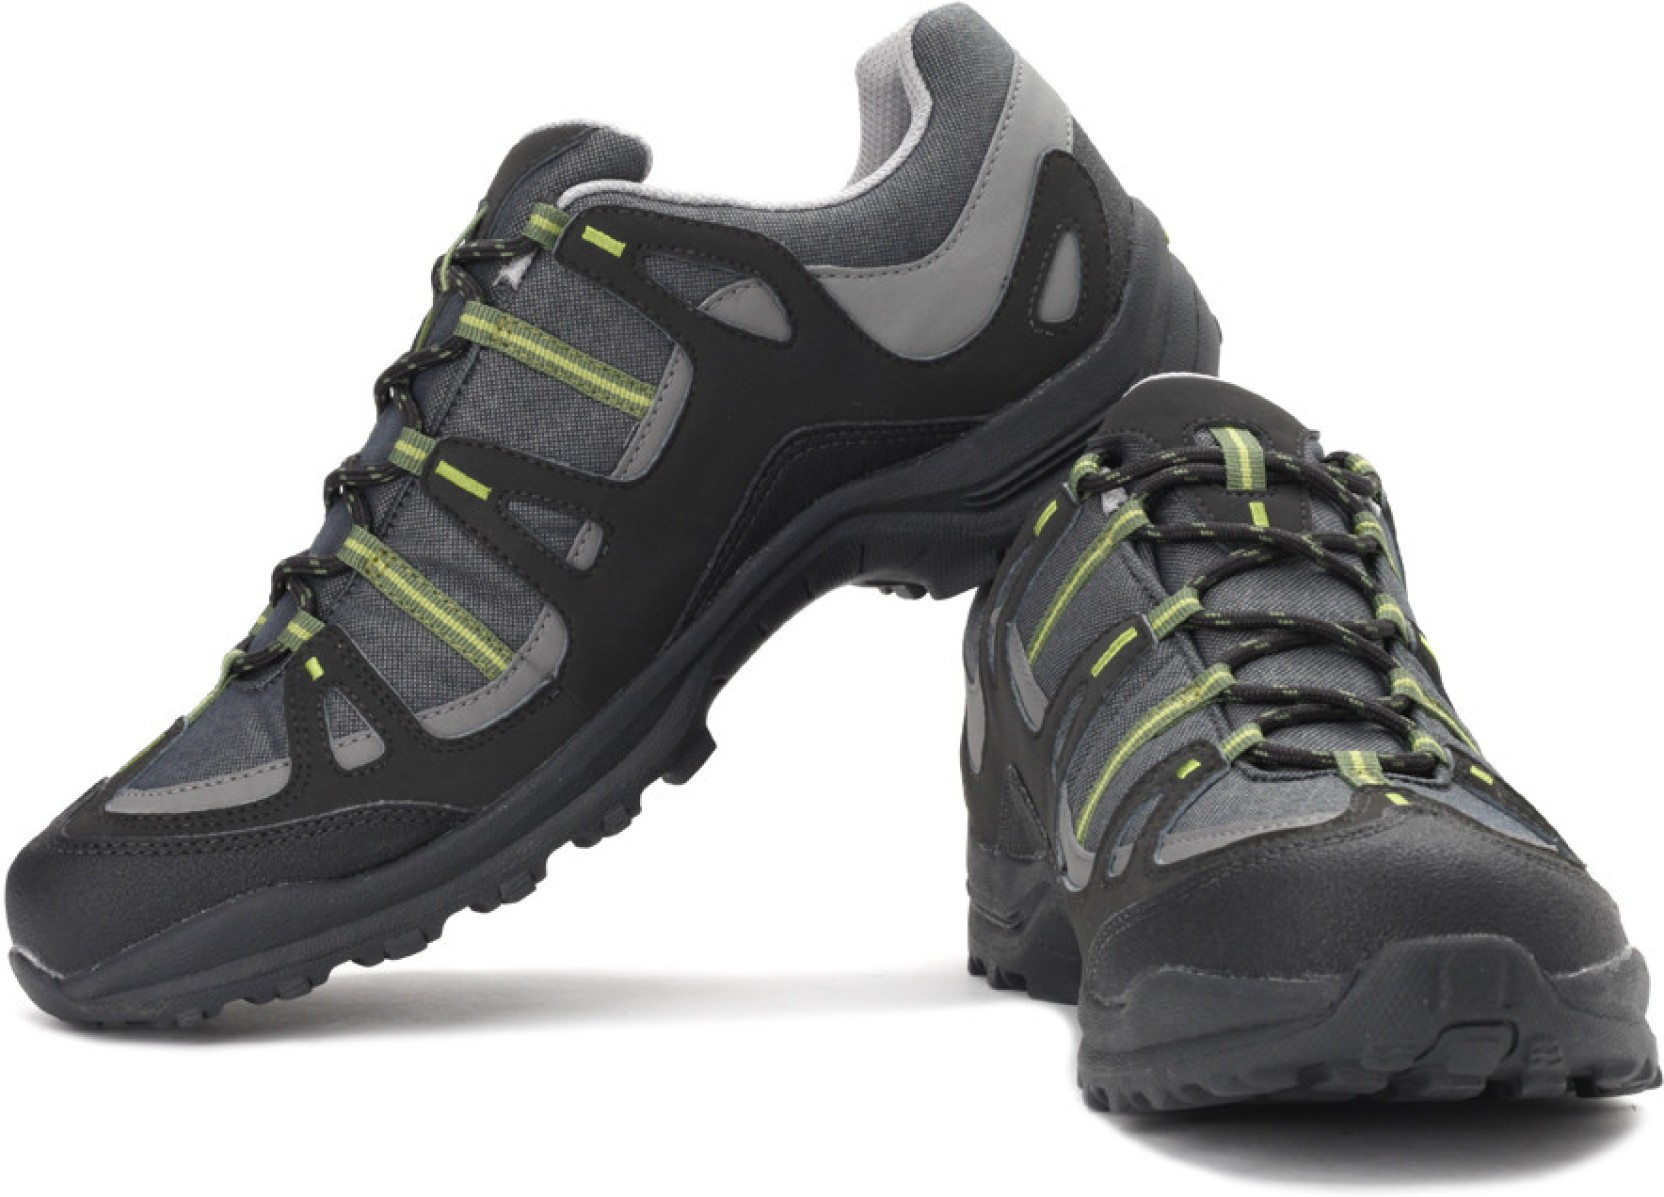 Quechua by Decathlon Arpenaz 100 Hiking Shoes - Buy Black